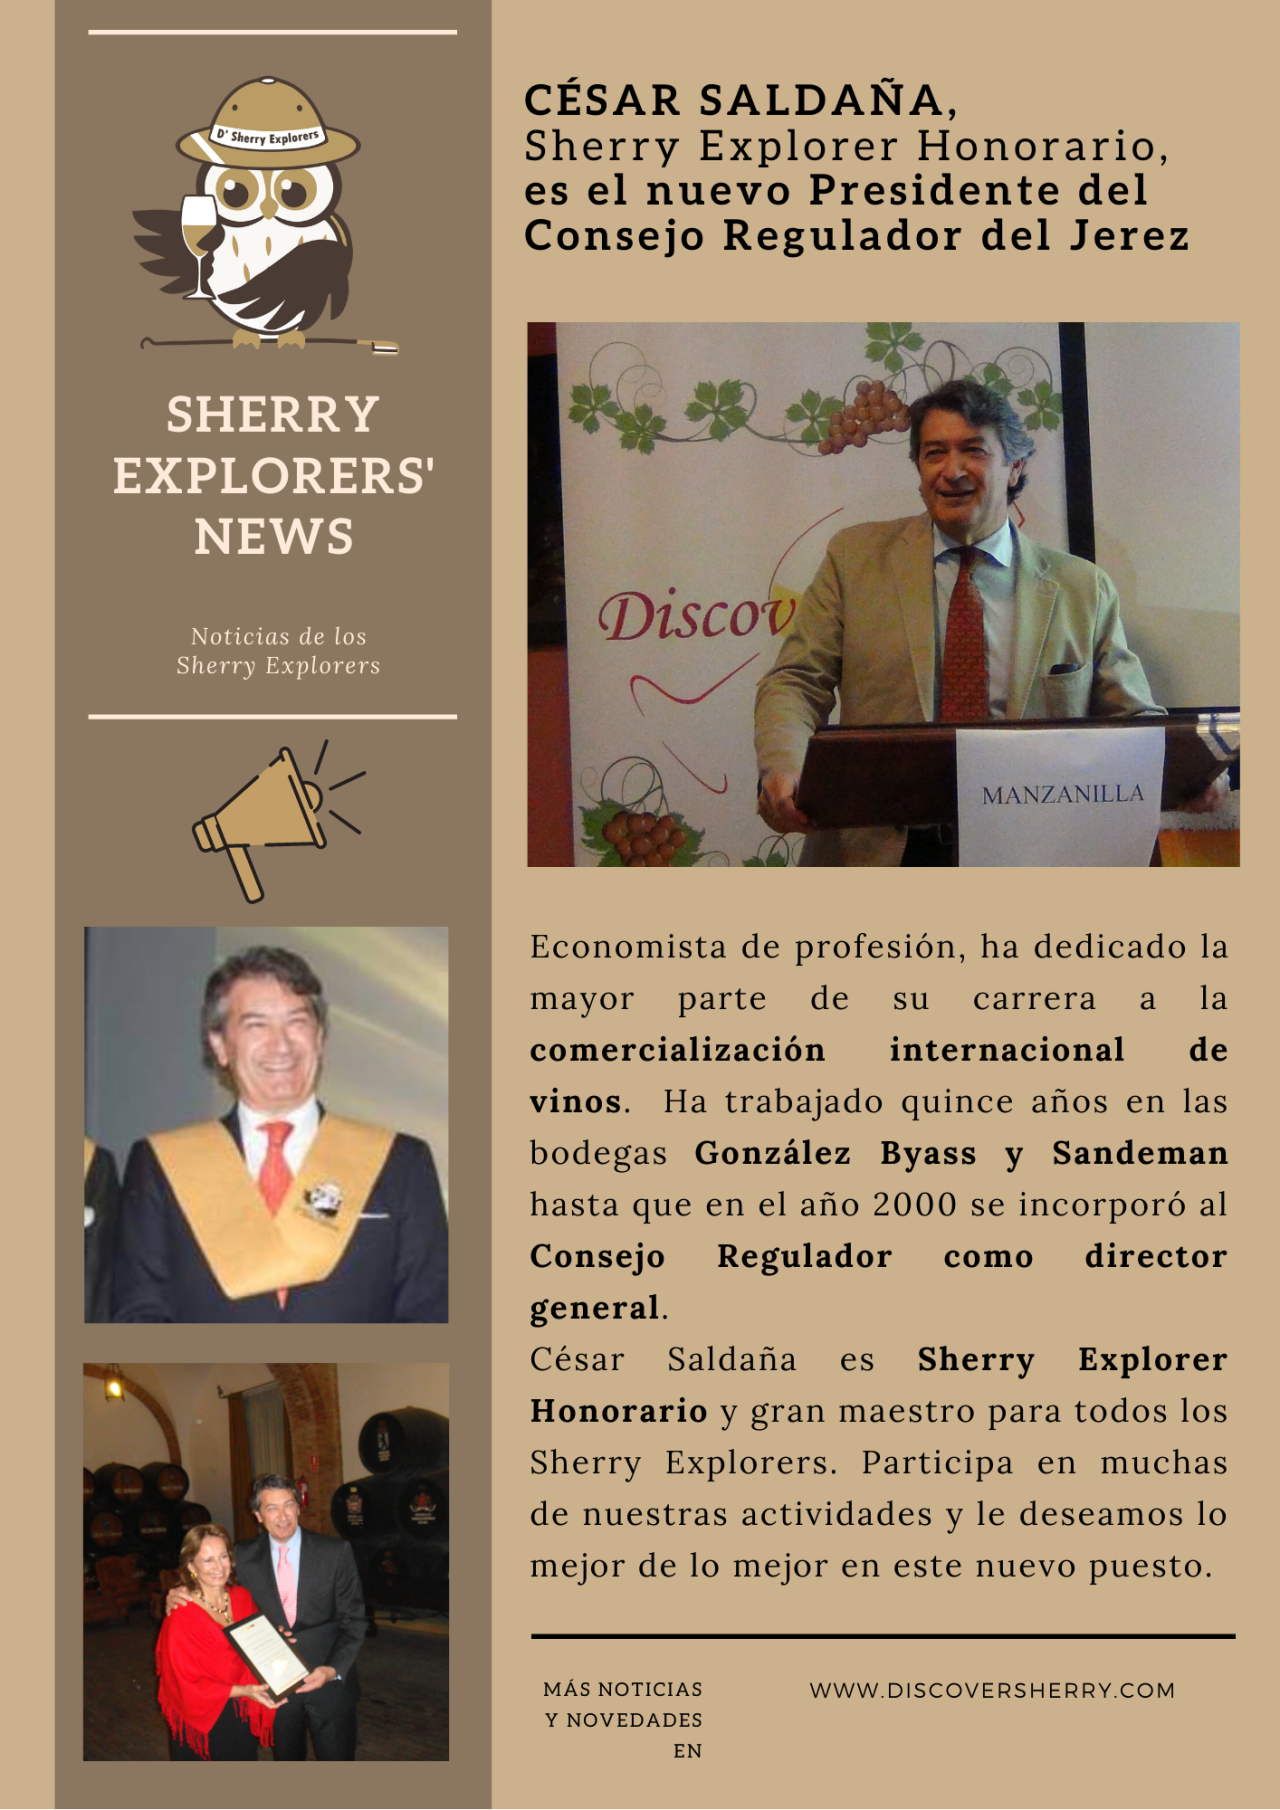 Sherry Explorers´ News: César Saldaña